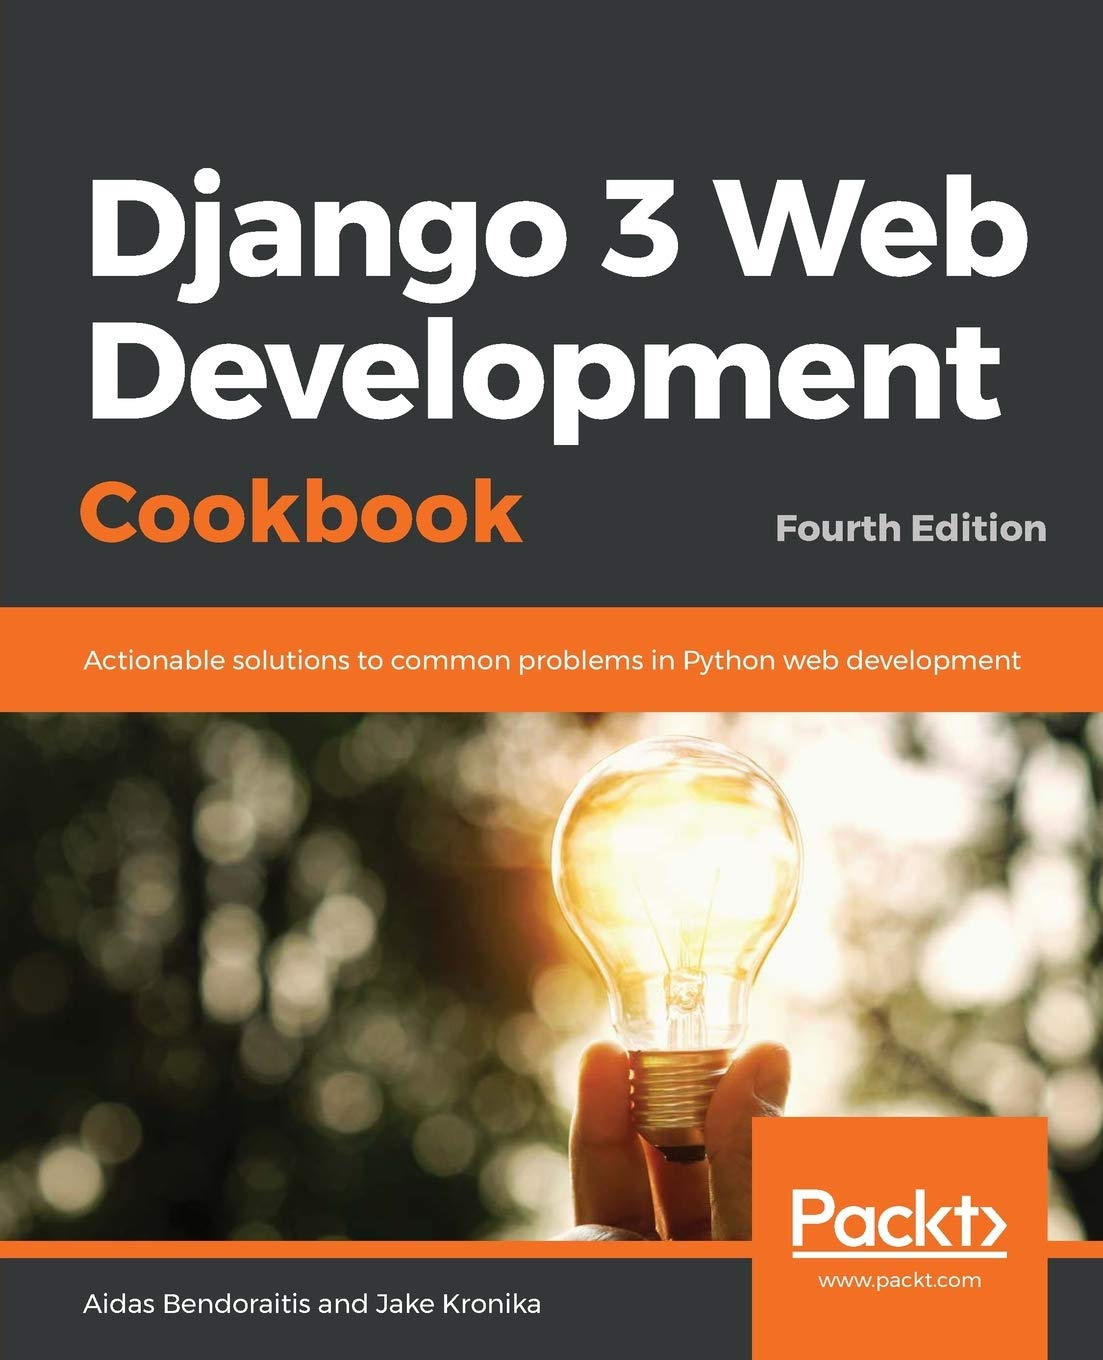 Django 3 Web Development Cookbook - Fourth Edition